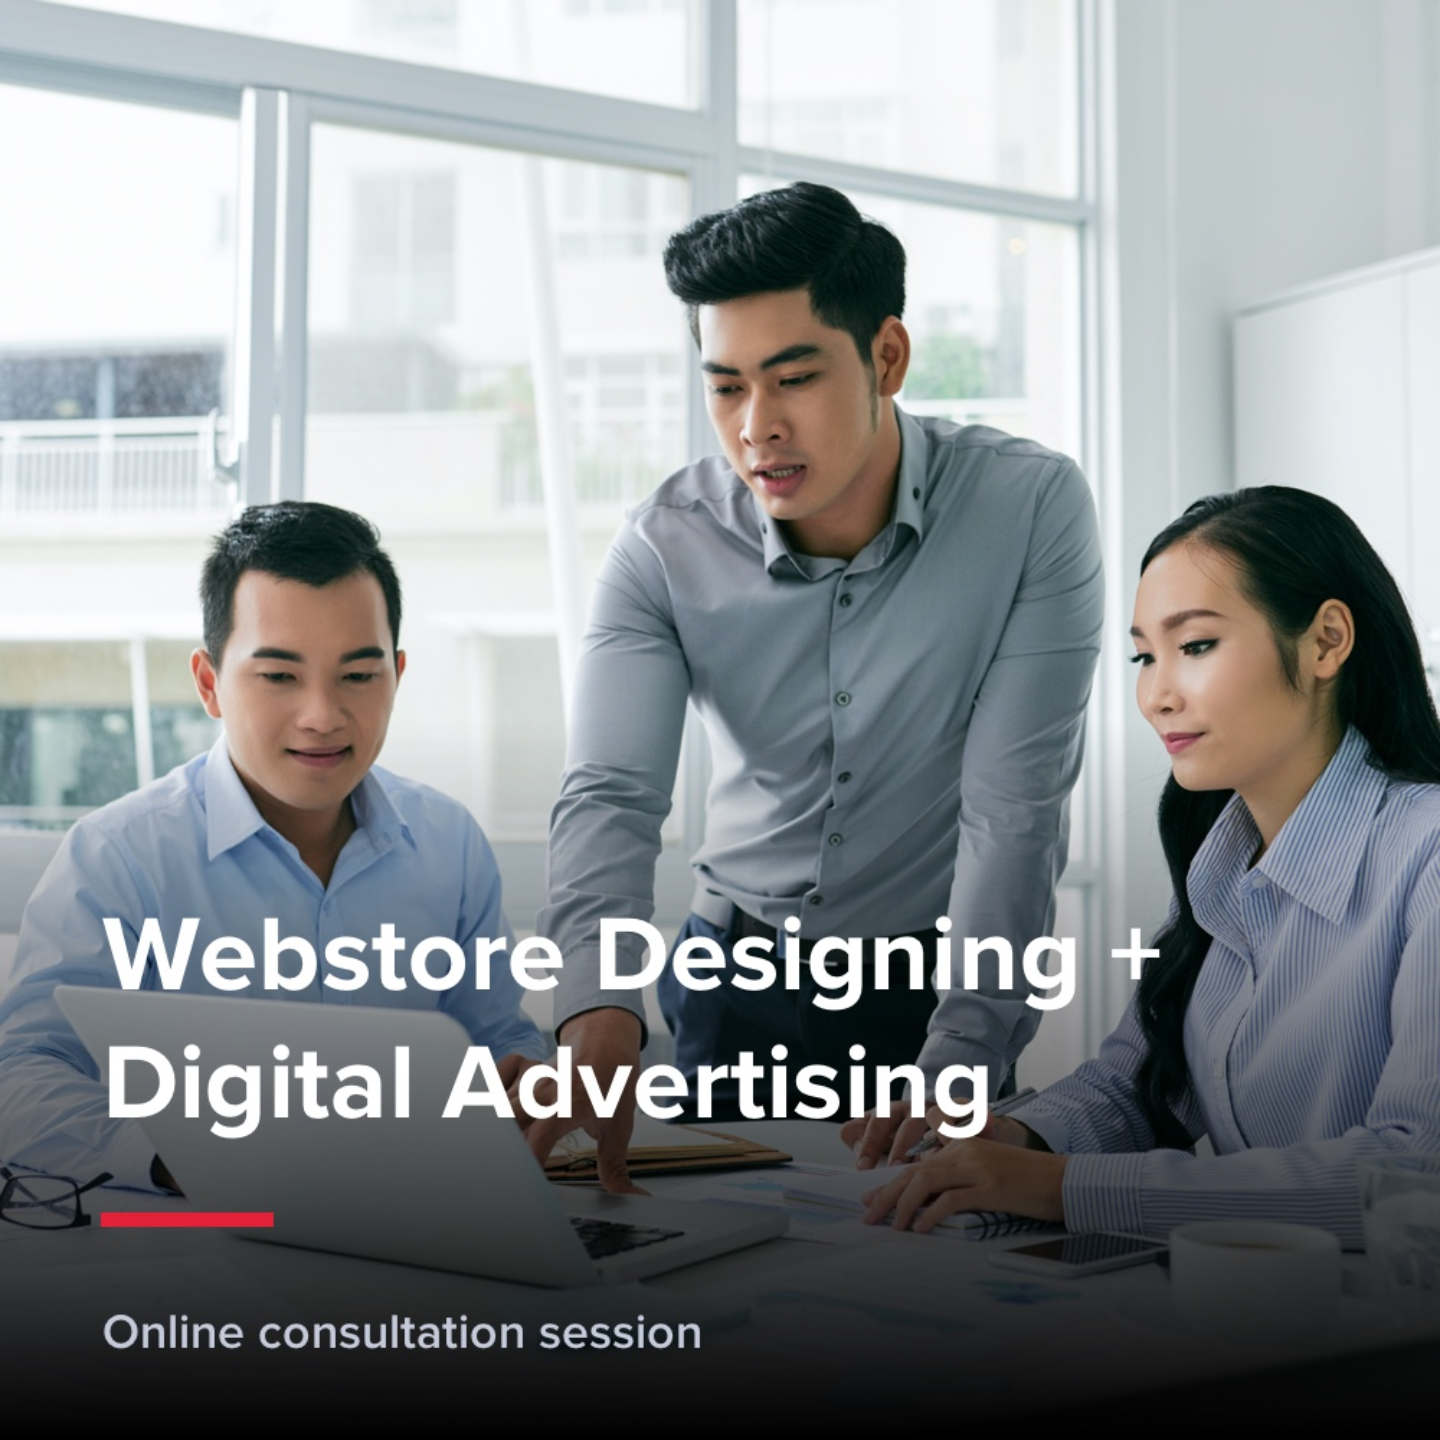 Bundle Package 2 - Webstore designing + Digital Advertising